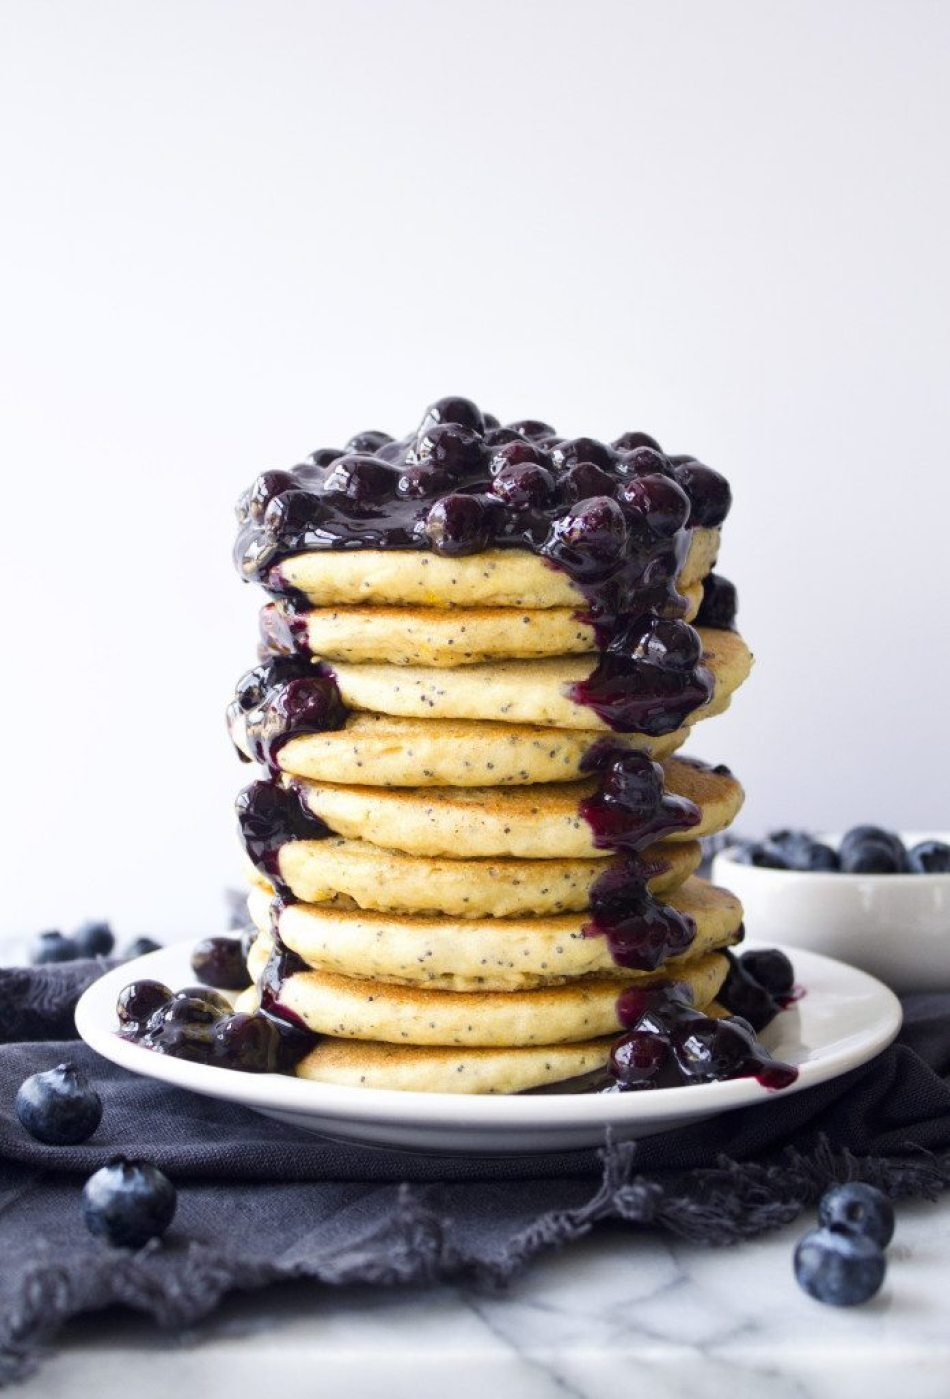 Lemon Poppy Seed Pancakes With Blueberry Sauce | Free of gluten, dairy, and refined sugar.